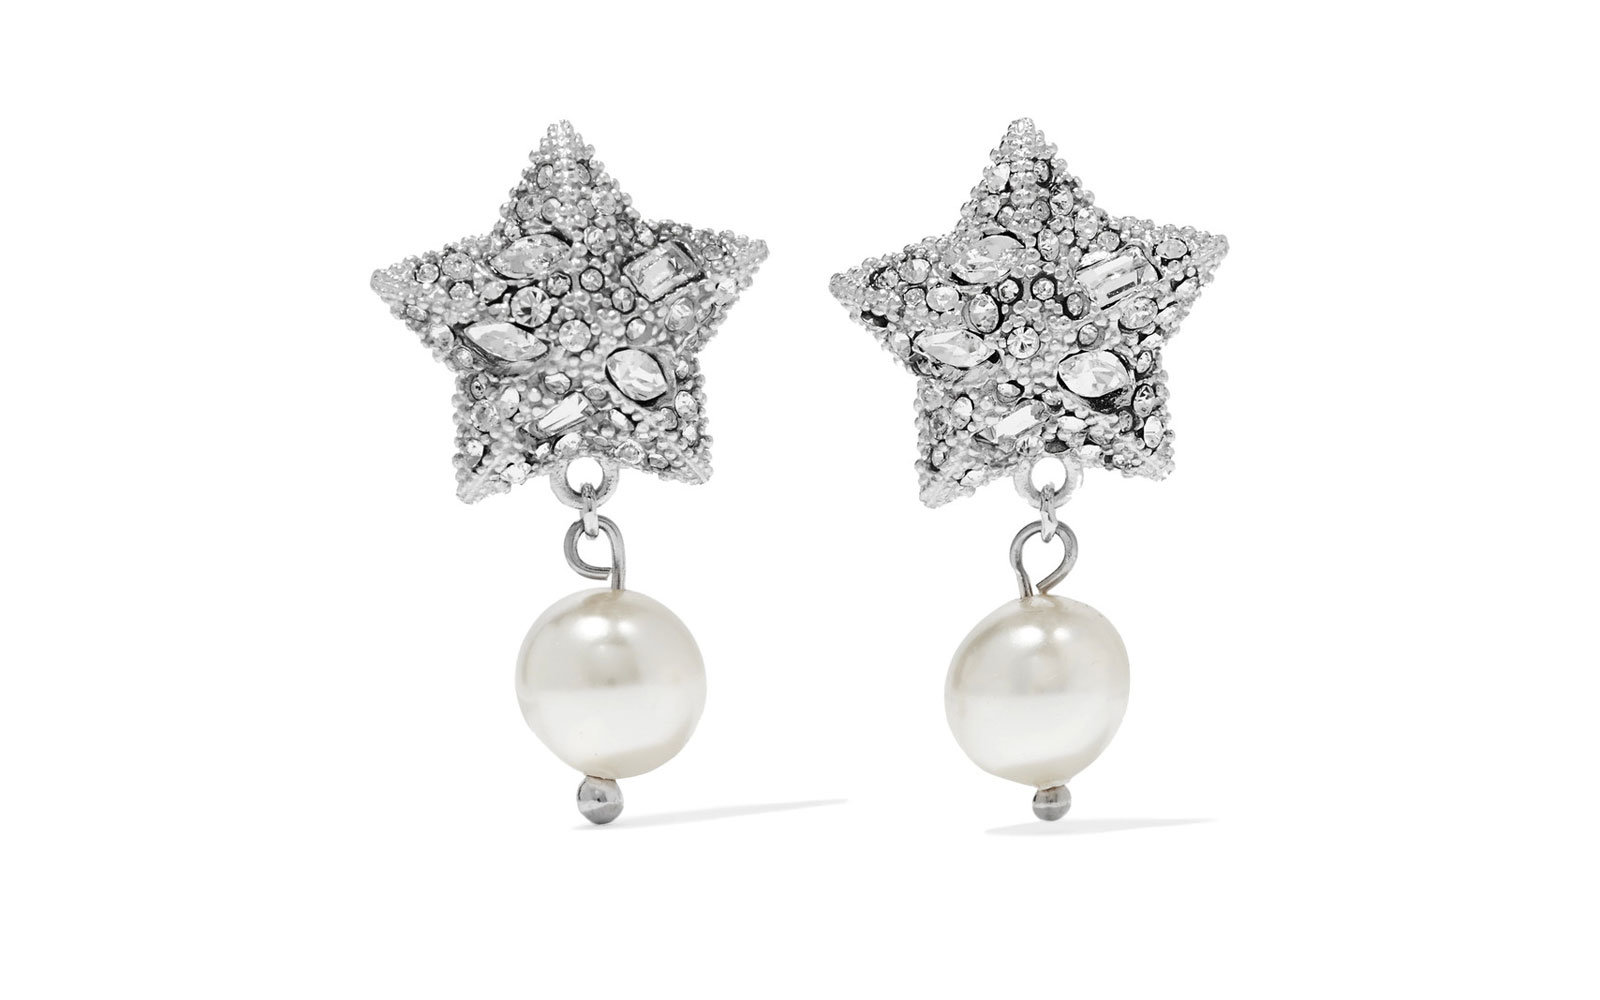 Miu Miu Silver-plated, Crystal, and Faux Pearl Earrings